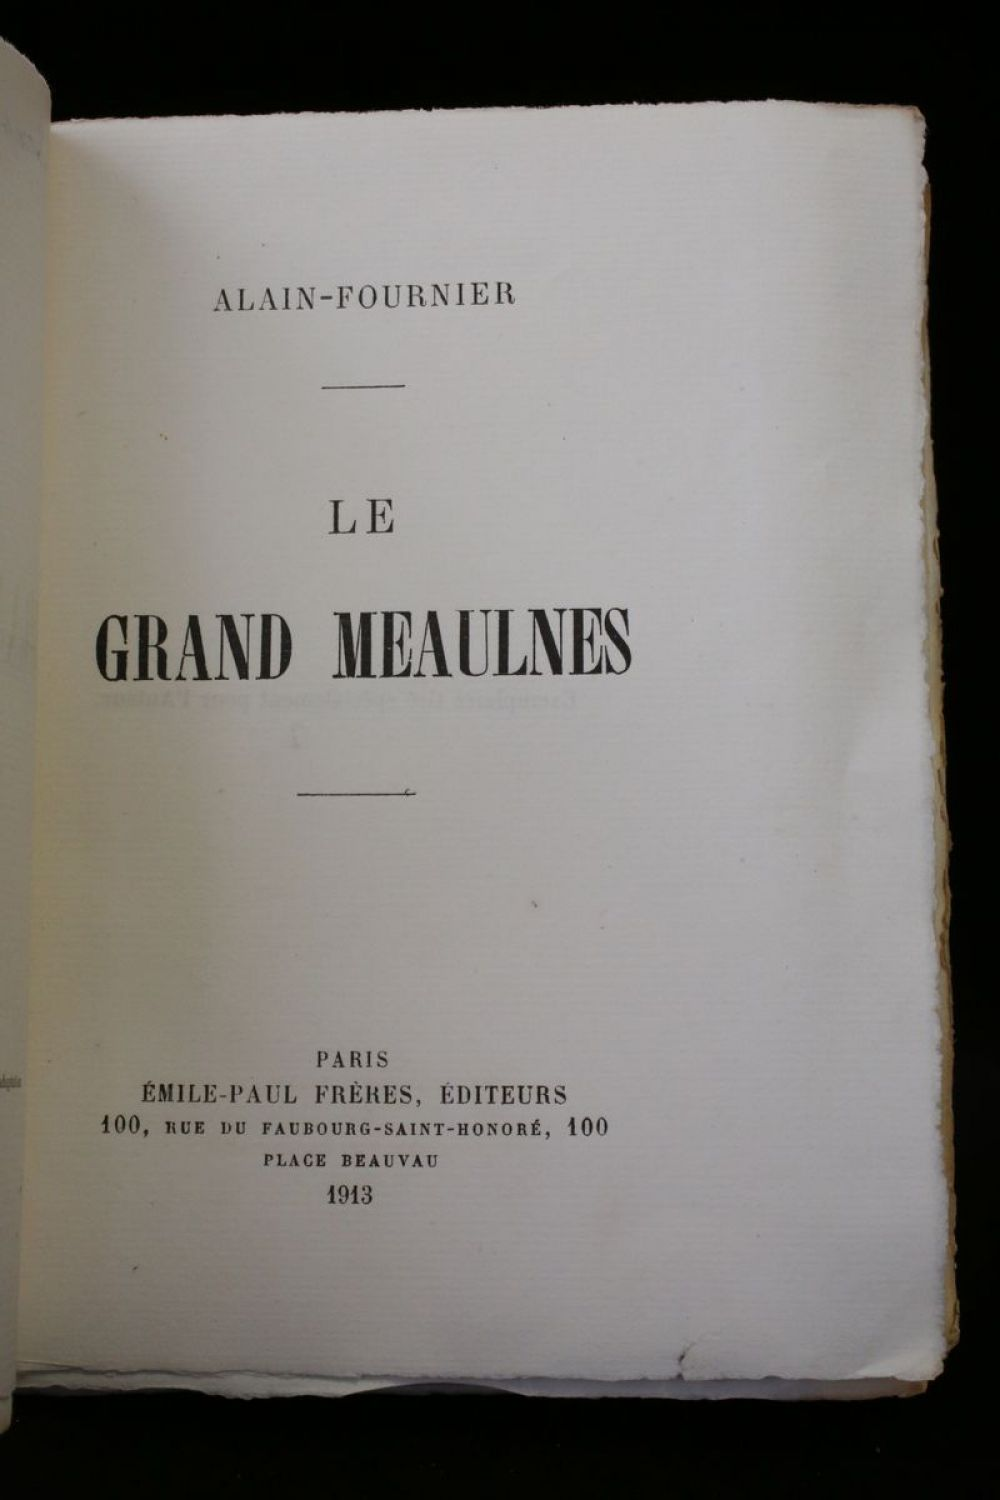 Le Grand Meaulnes revisited